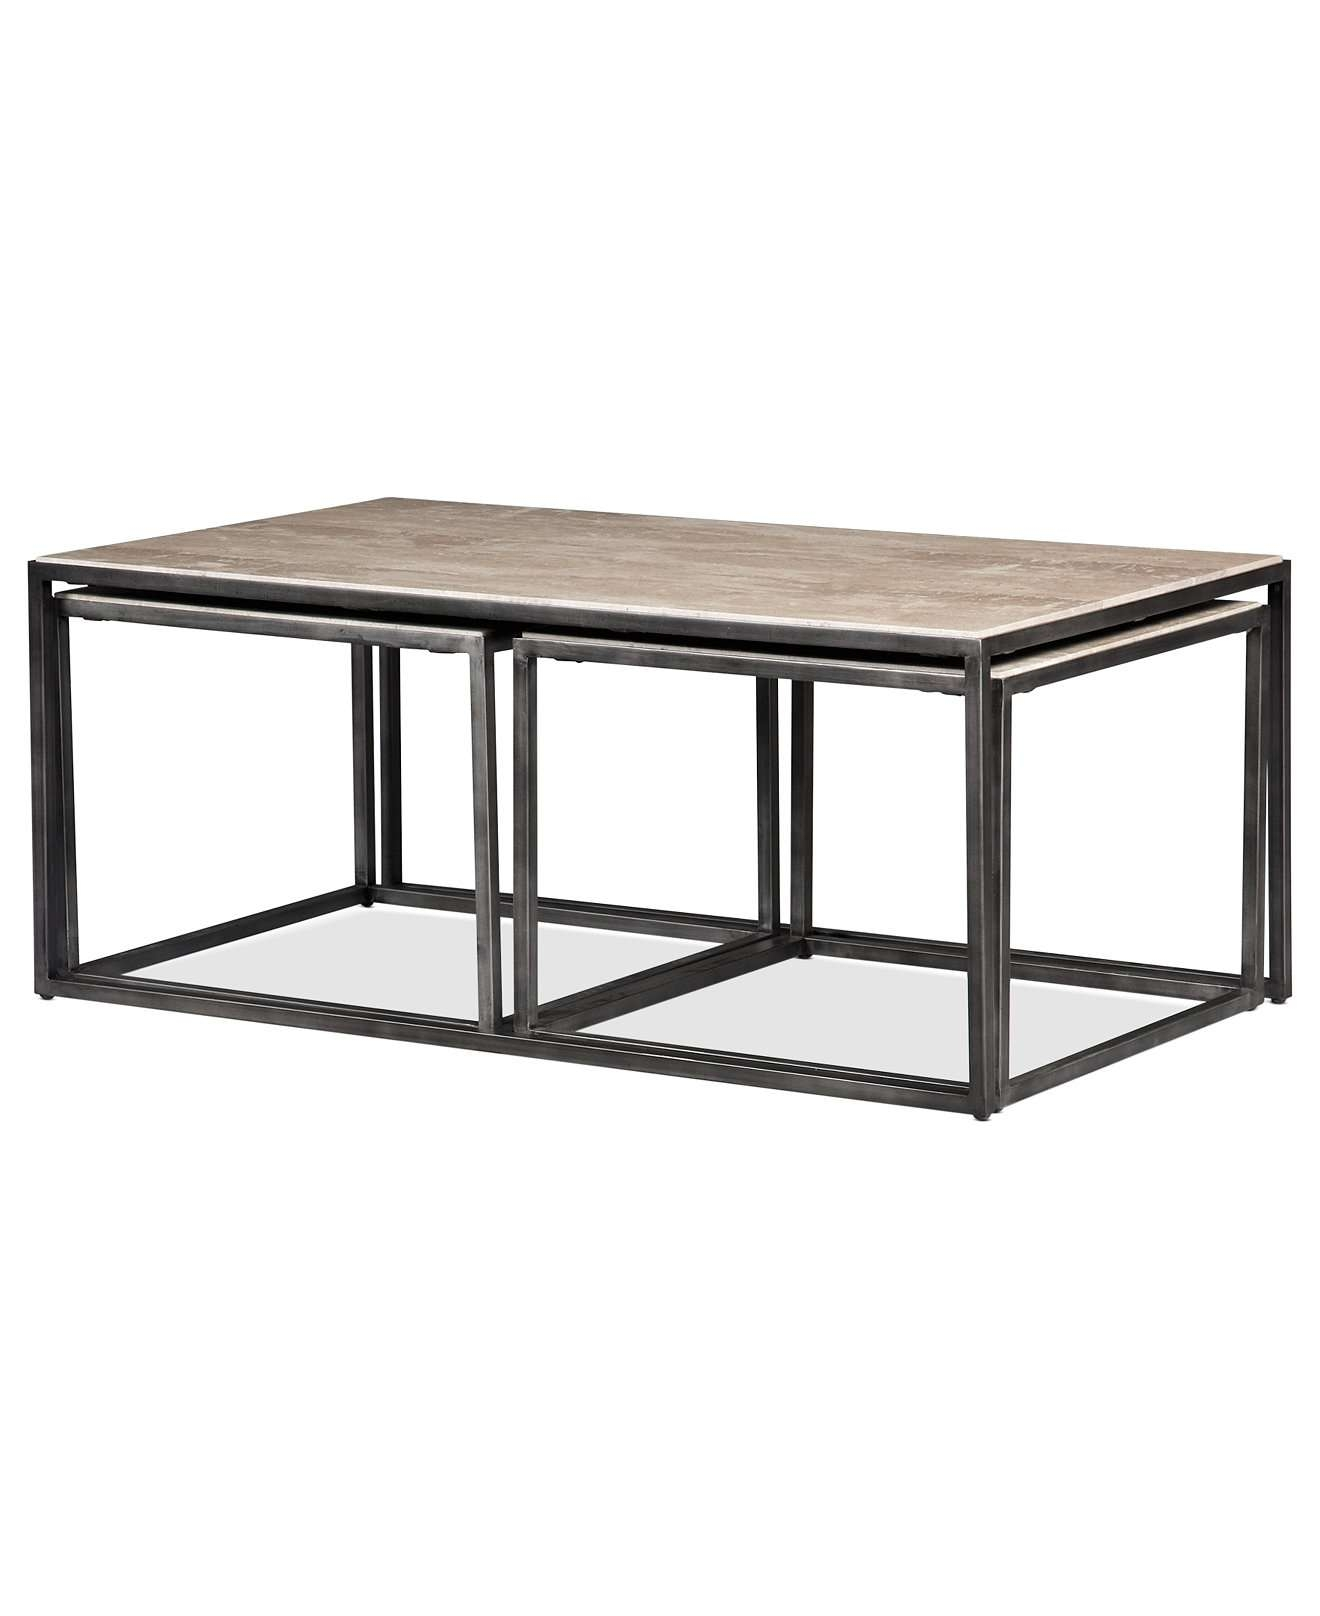 Fashionable Nest Coffee Tables In Table Awesome Glass Of 2 Piece Nesting